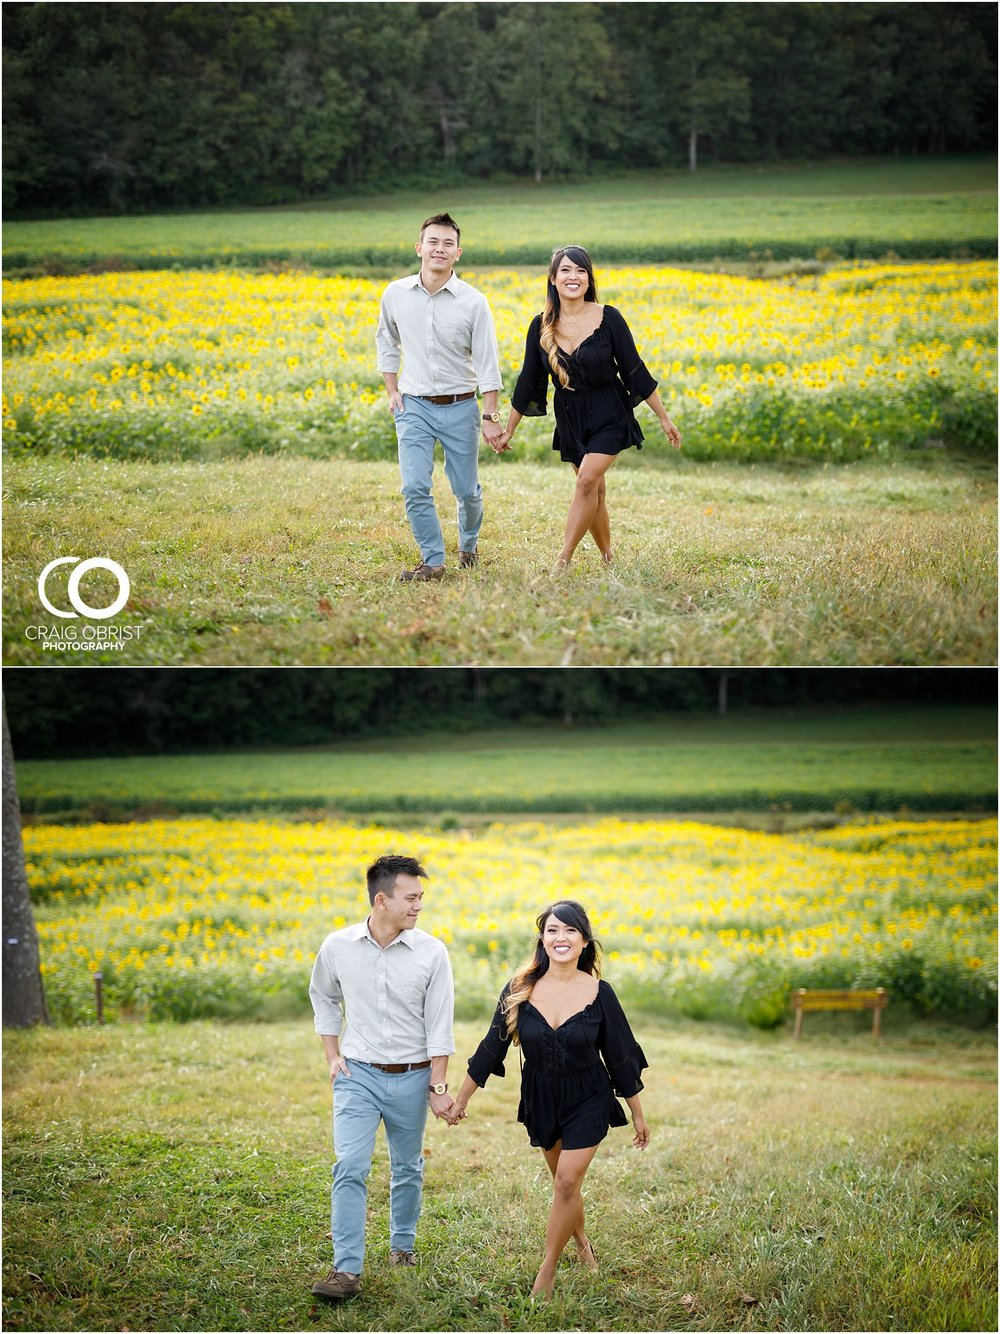 Sunflower field engagement portraits sunset mountains georgia_0019.jpg